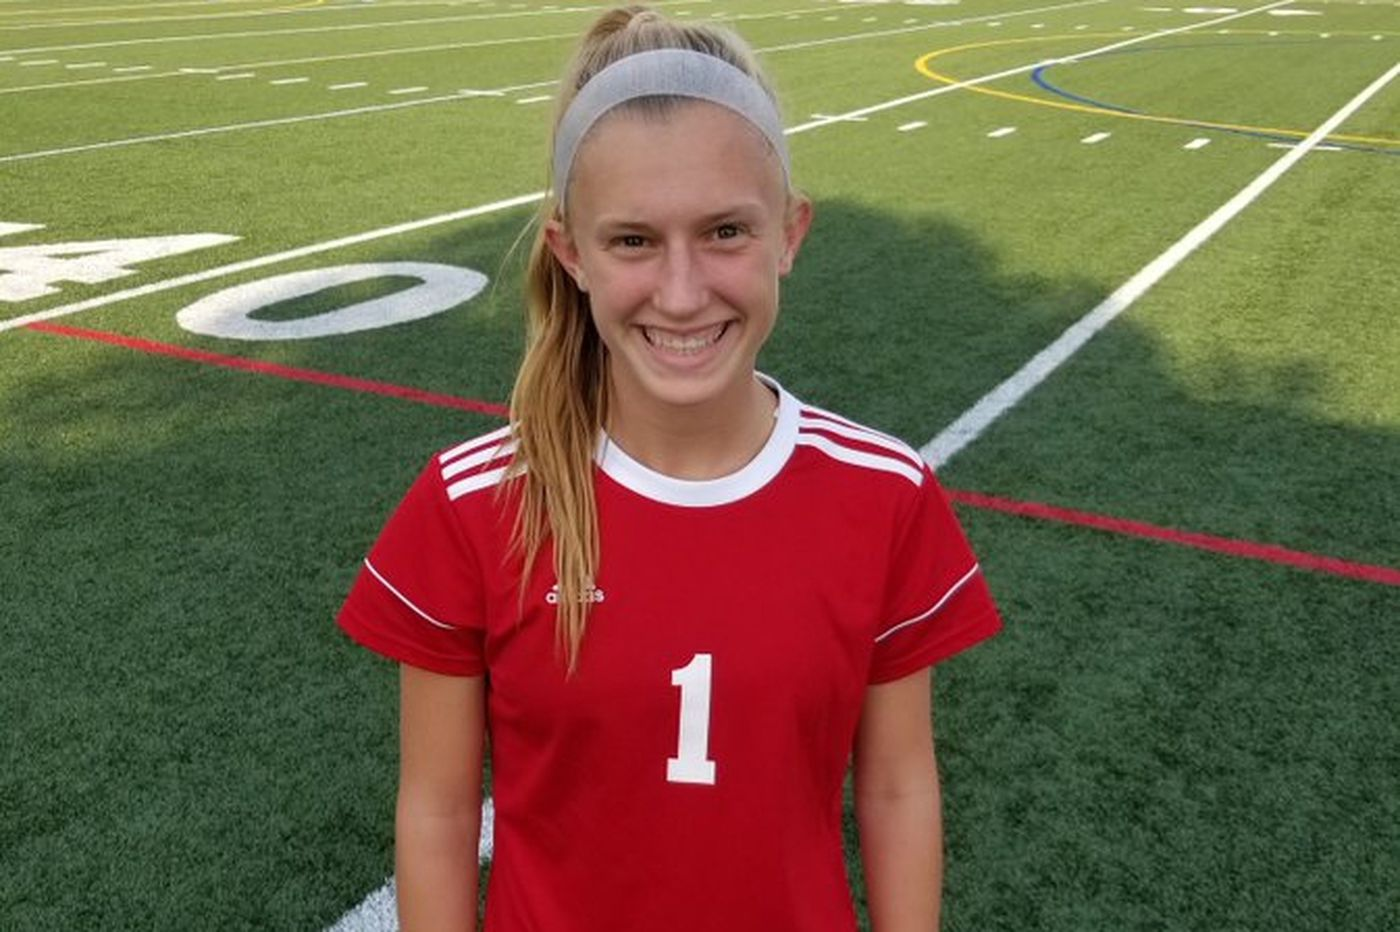 Tuesday's South Jersey roundup: Sydney Farnham helps Haddon Township girls' soccer top Lindenwold